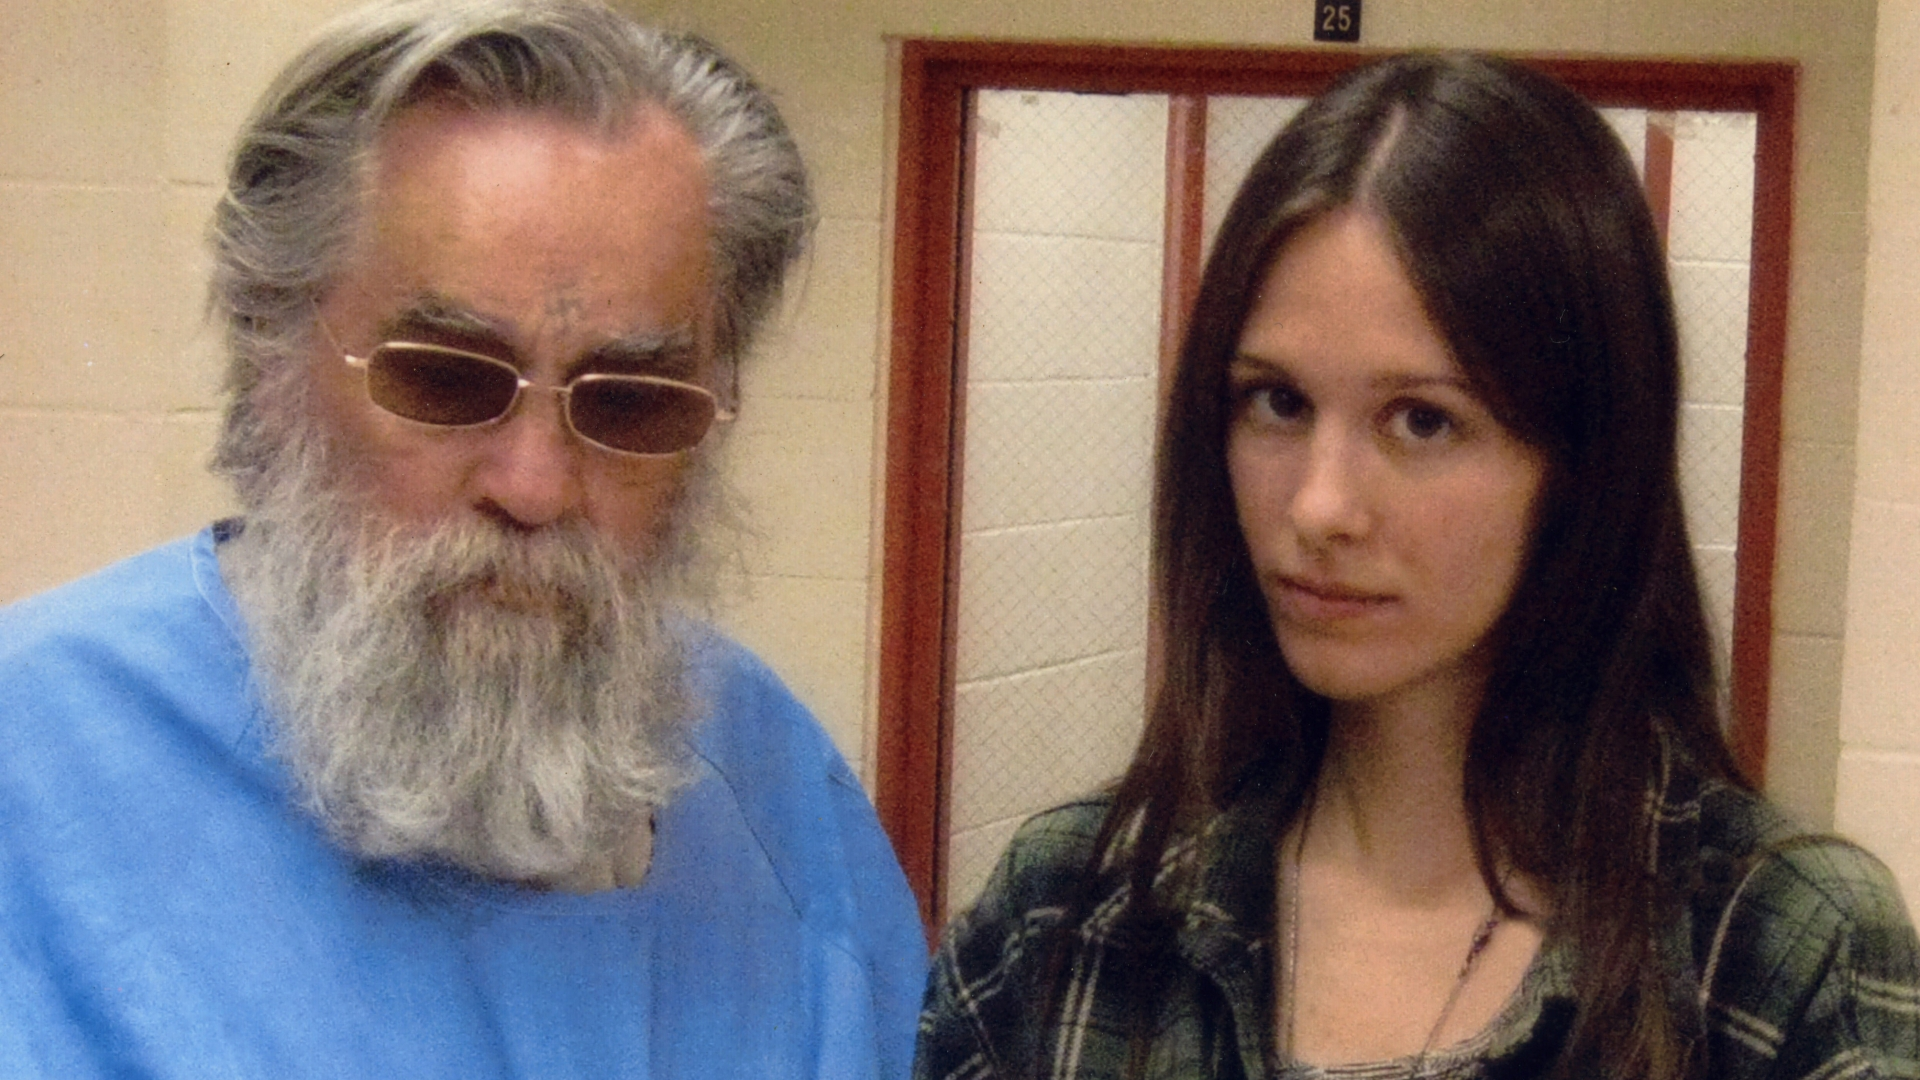 Charles Manson and the 25-year-old 'fan' he named Star who started by visiting him every Saturday and Sunday before they got engaged. She moved near the Corcoran State Prison when she was 19, to be closer to him and carved an X into her forehead, as many Manson followers have done over the years. (Credit: Polaris Images)